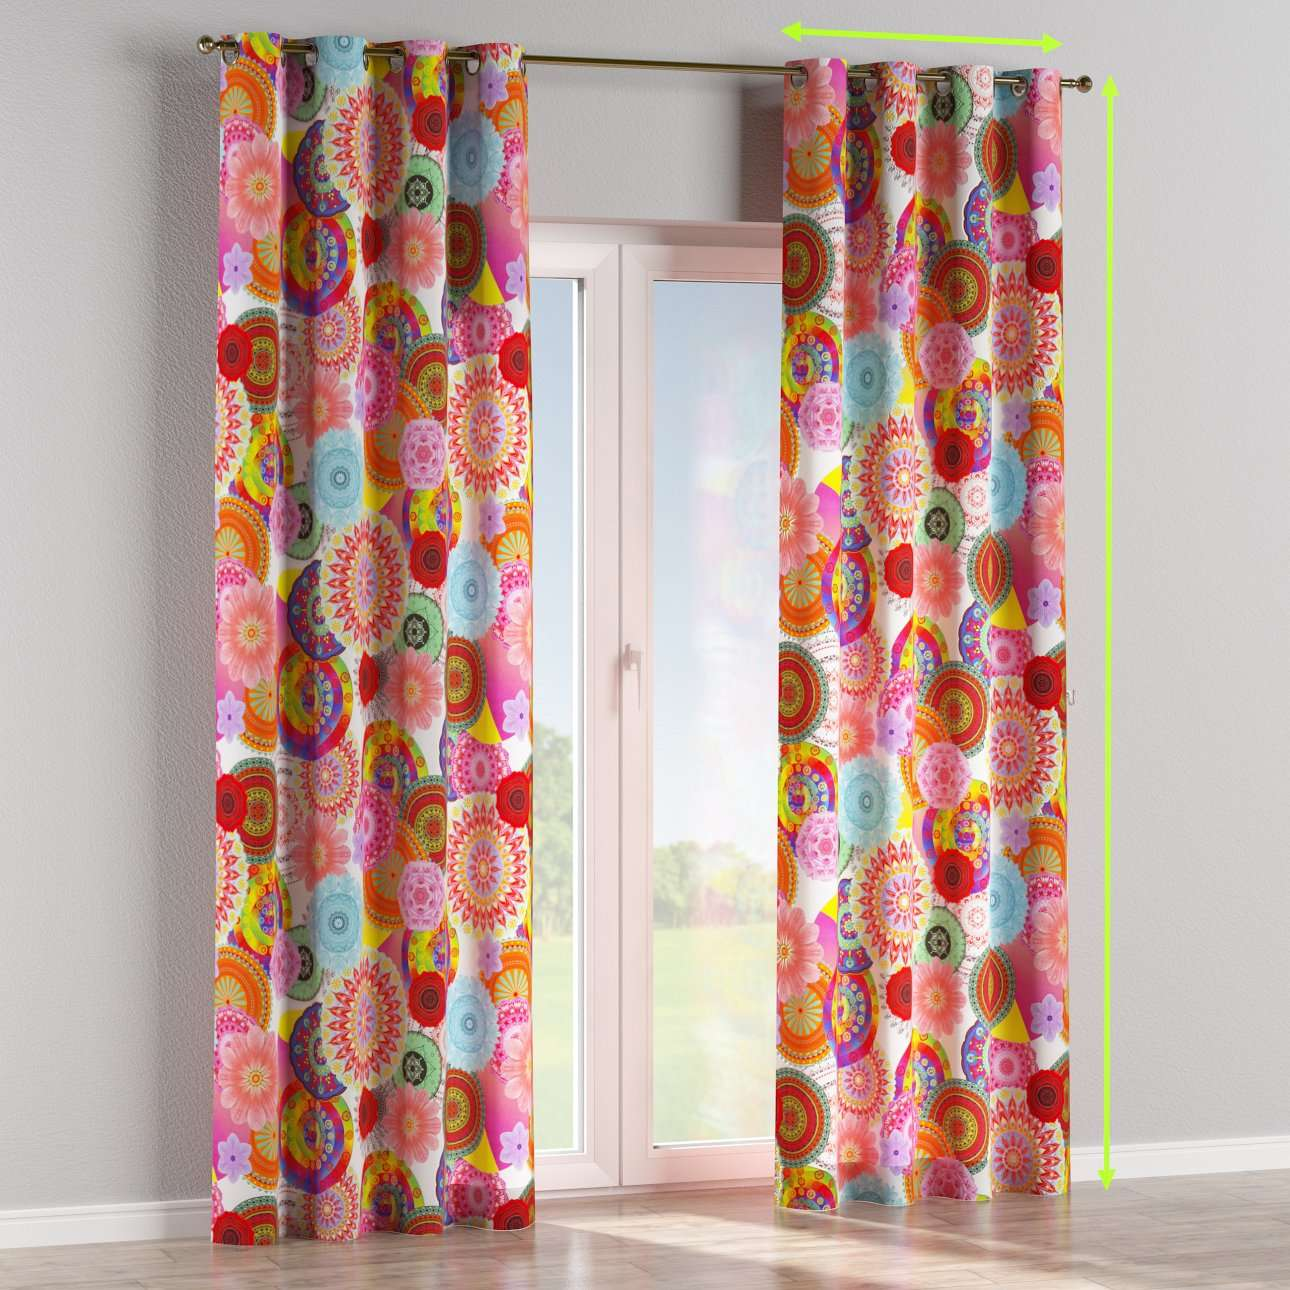 Eyelet curtains in collection Comics/Geometrical, fabric: 135-22